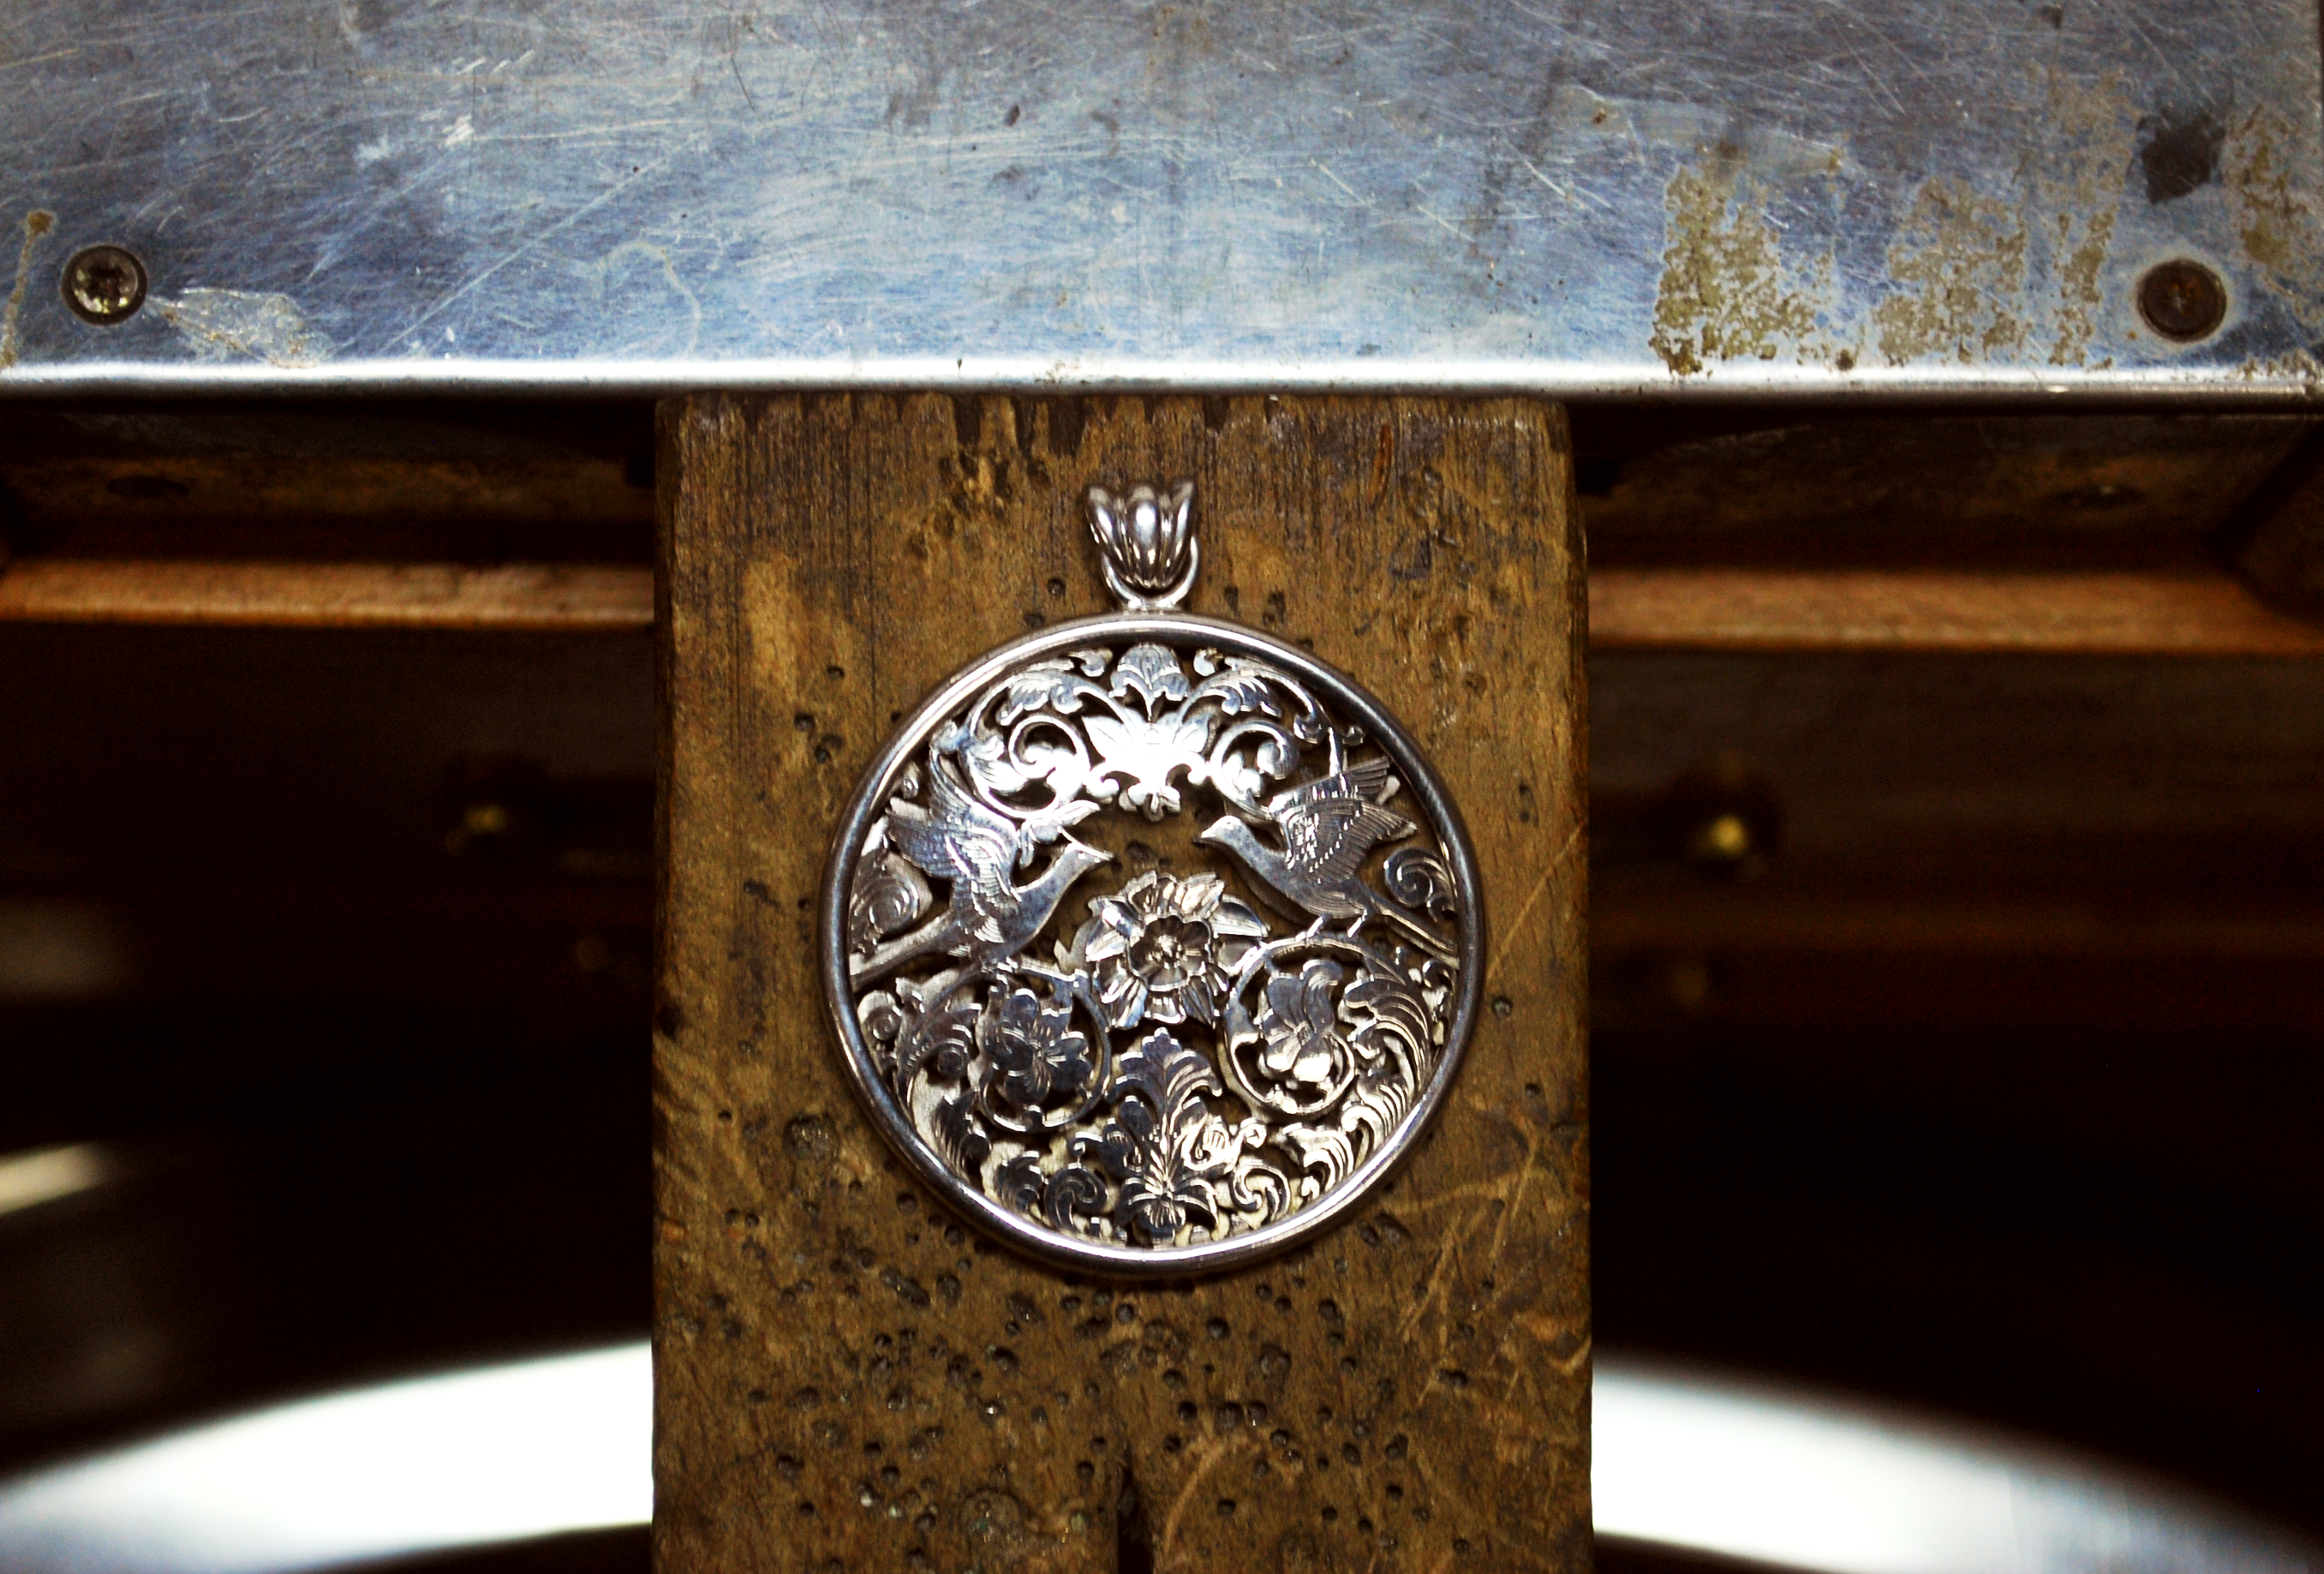 Piercing silver work piece on jeweller bench at Asimi Art studio in Hong Kong